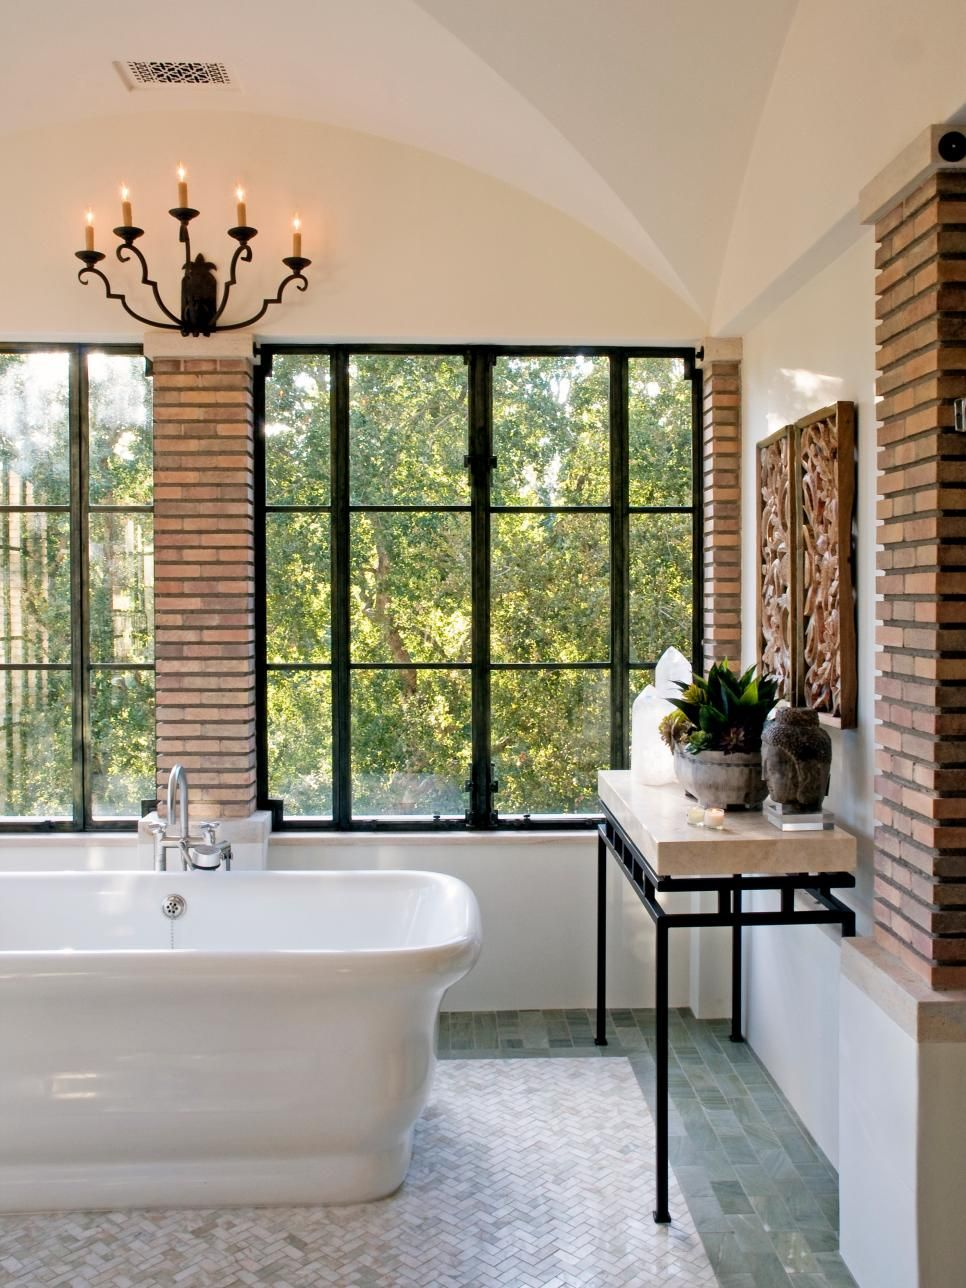 The brick columns contrast with the white walls and make